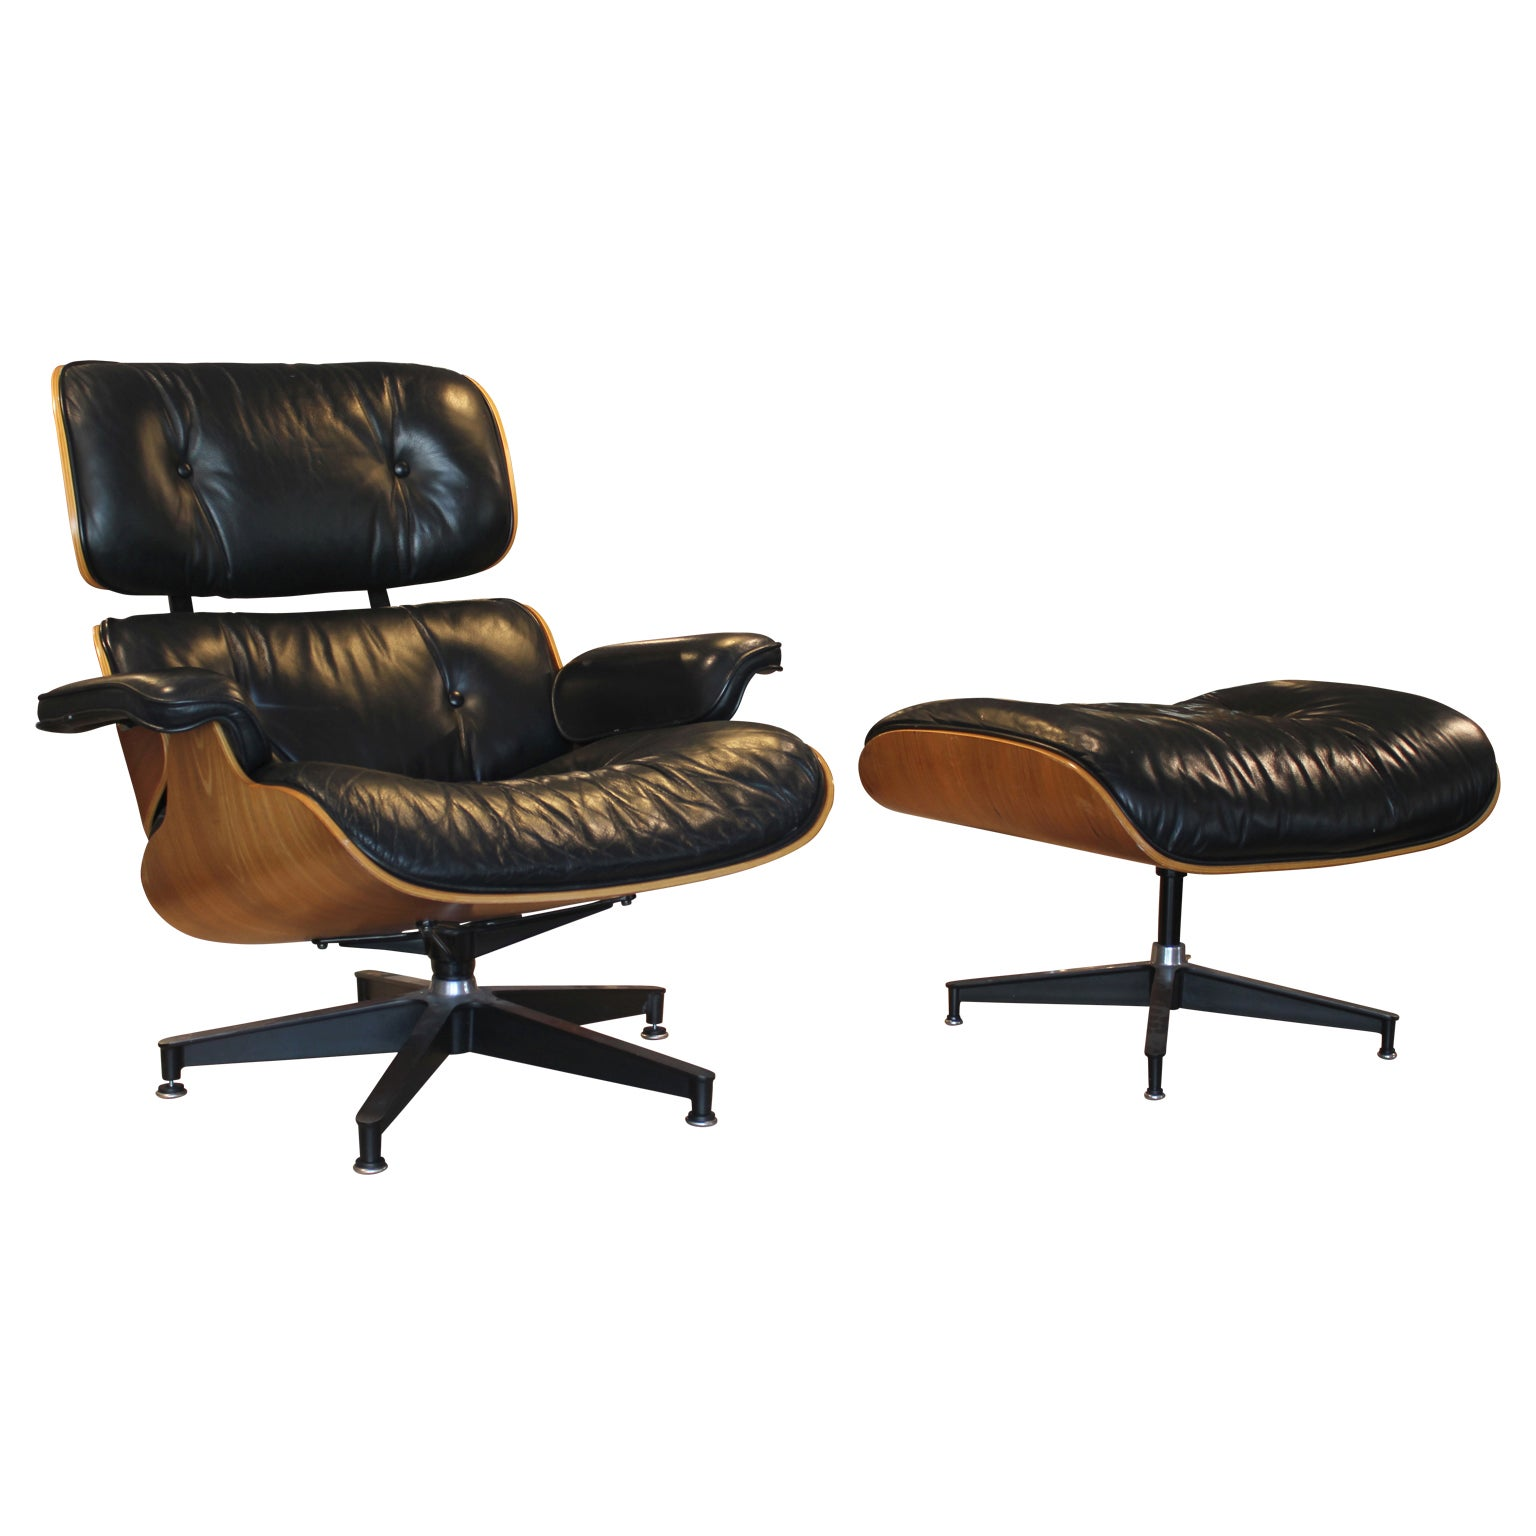 Modern Black Leather And Walnut Herman Miller Eames Lounge Chair Ottoman At 1stdibs